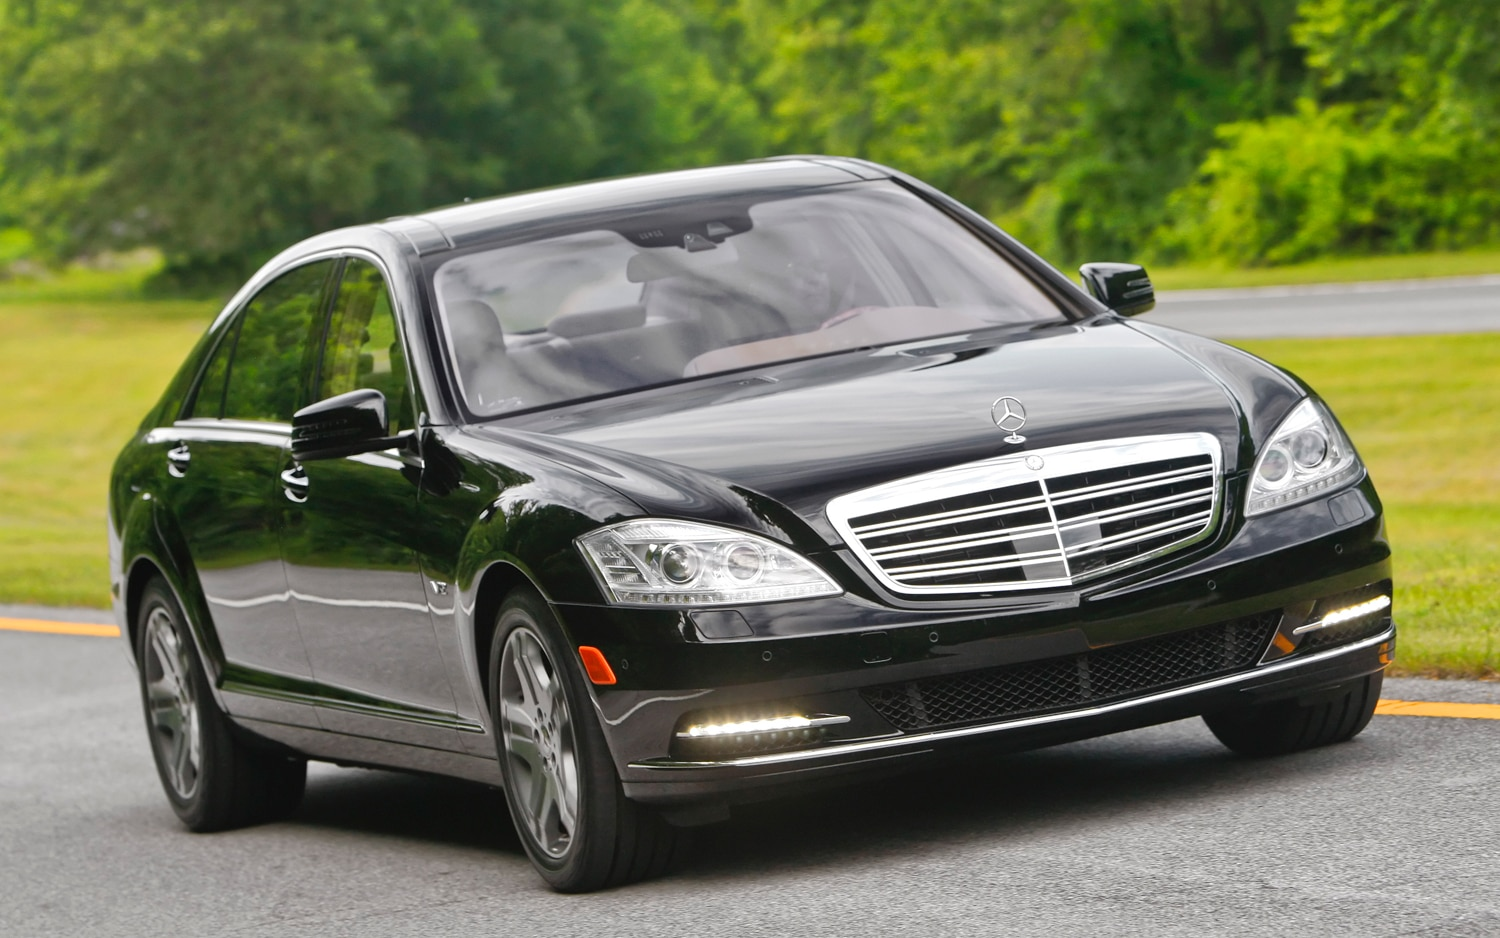 Mercedes benz plans to scrap maybach luxury brand by 2013 for 2011 mercedes benz s600